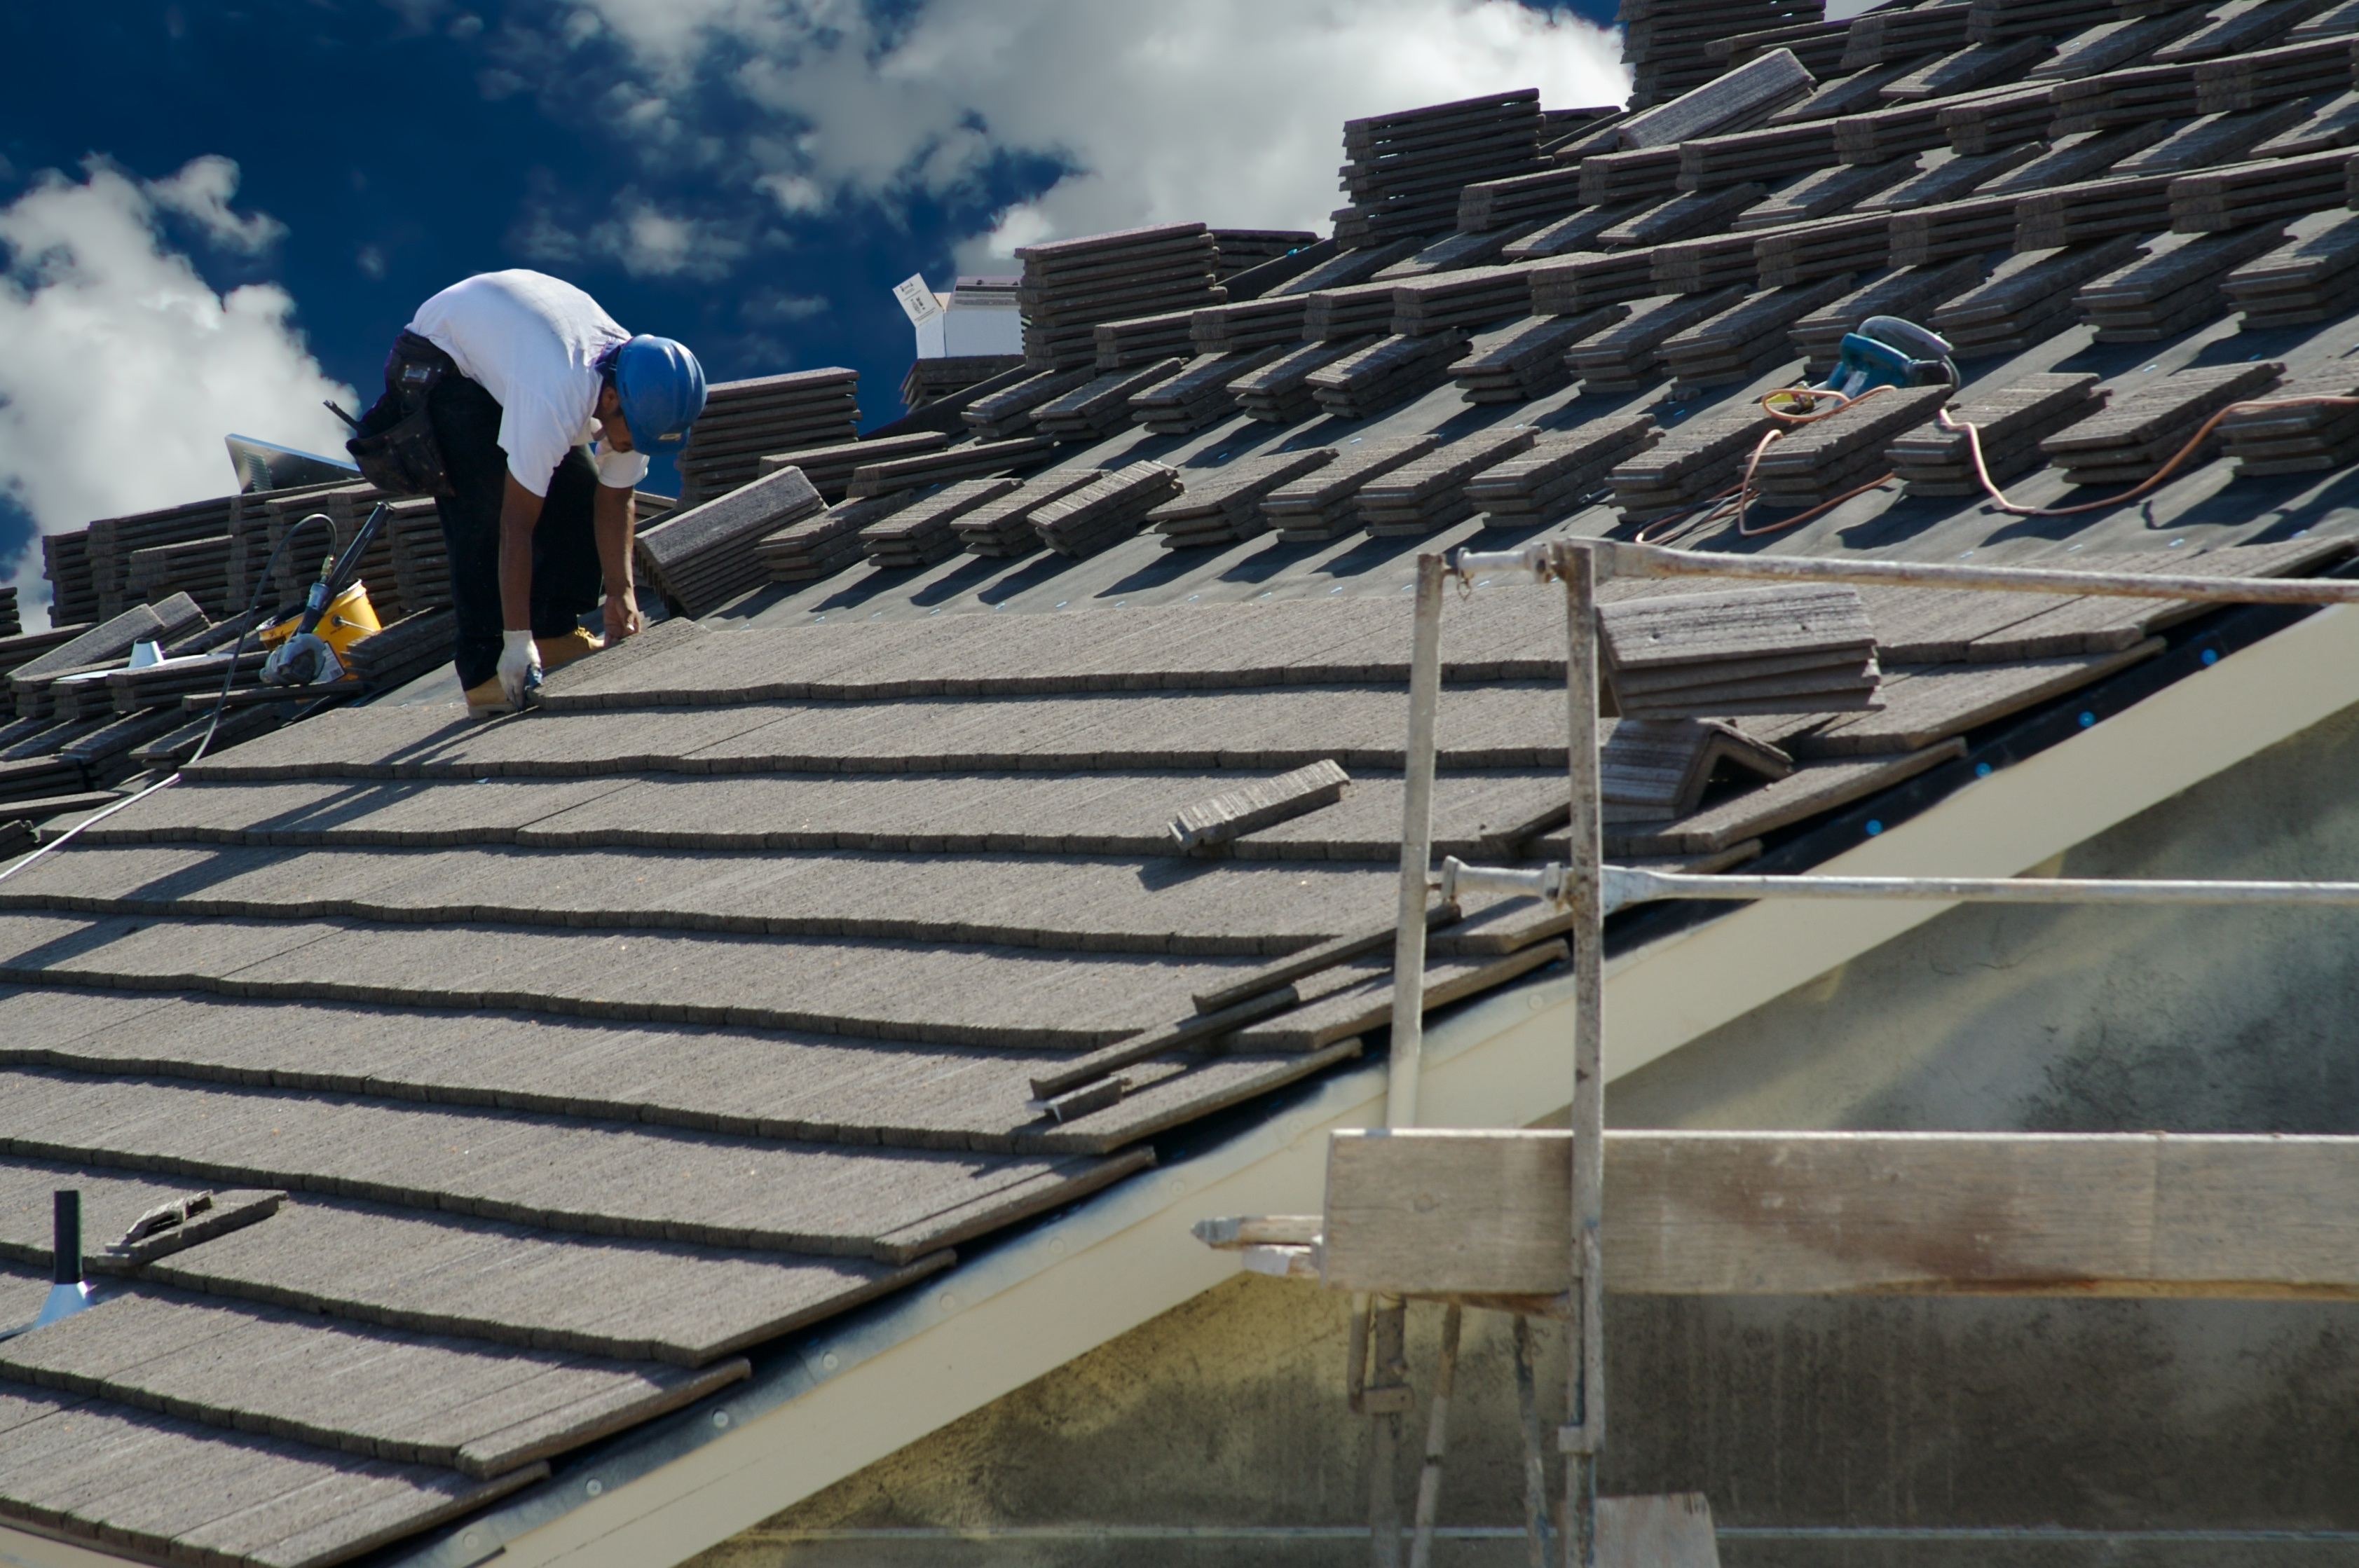 Roof Repair Vancouver Wa Home Design Ideas and